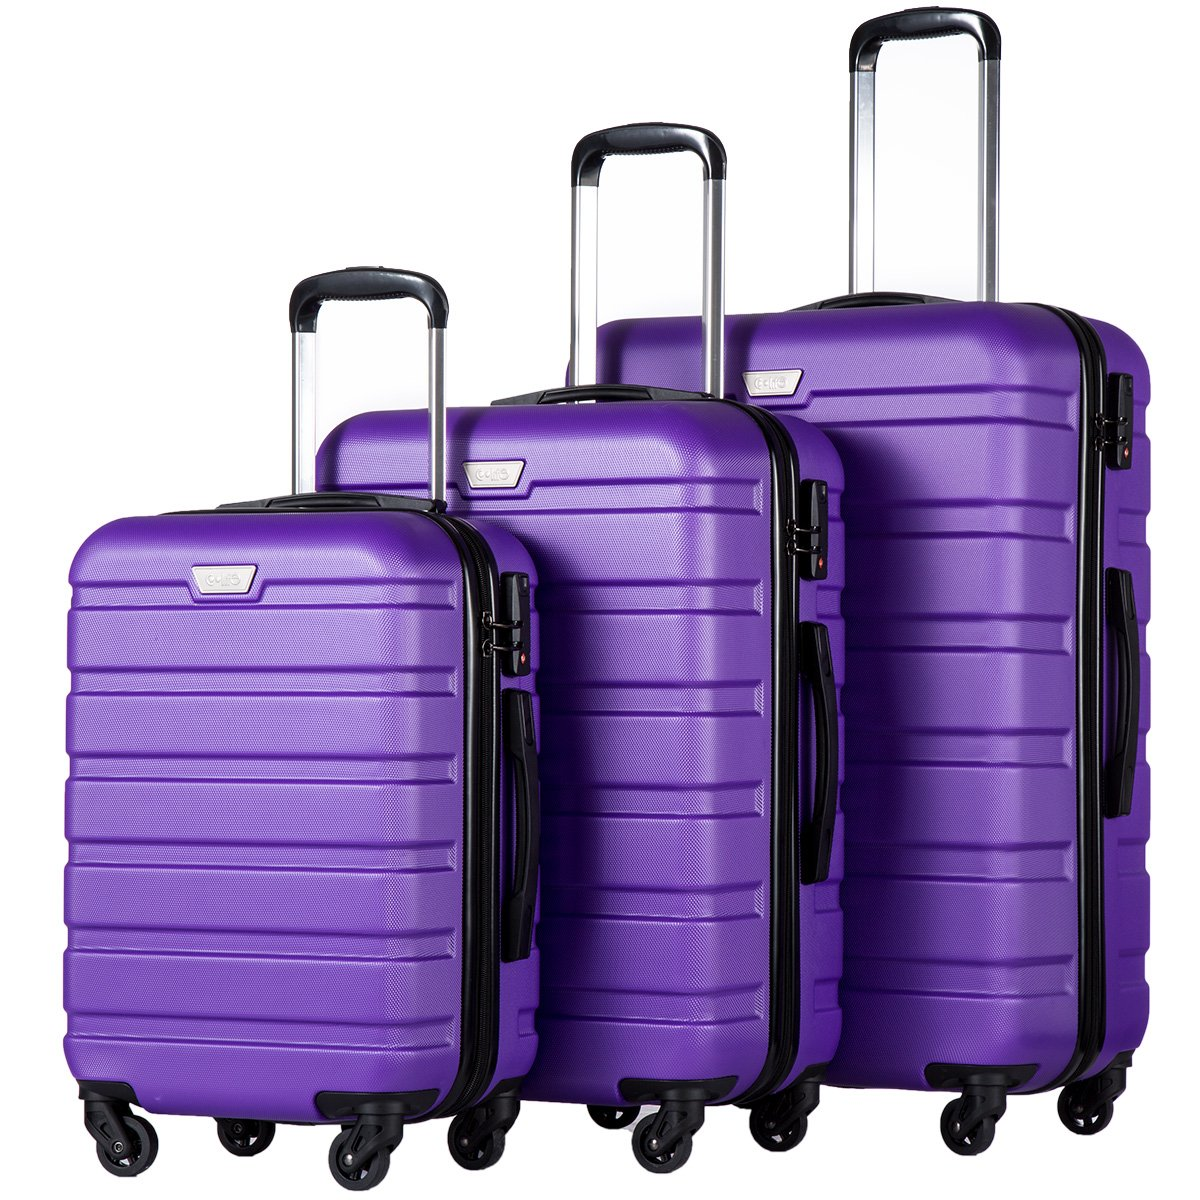 Coolife Luggage 3 Piece Set Suitcase Spinner Hardshell Lightweight (purple2) by Coolife